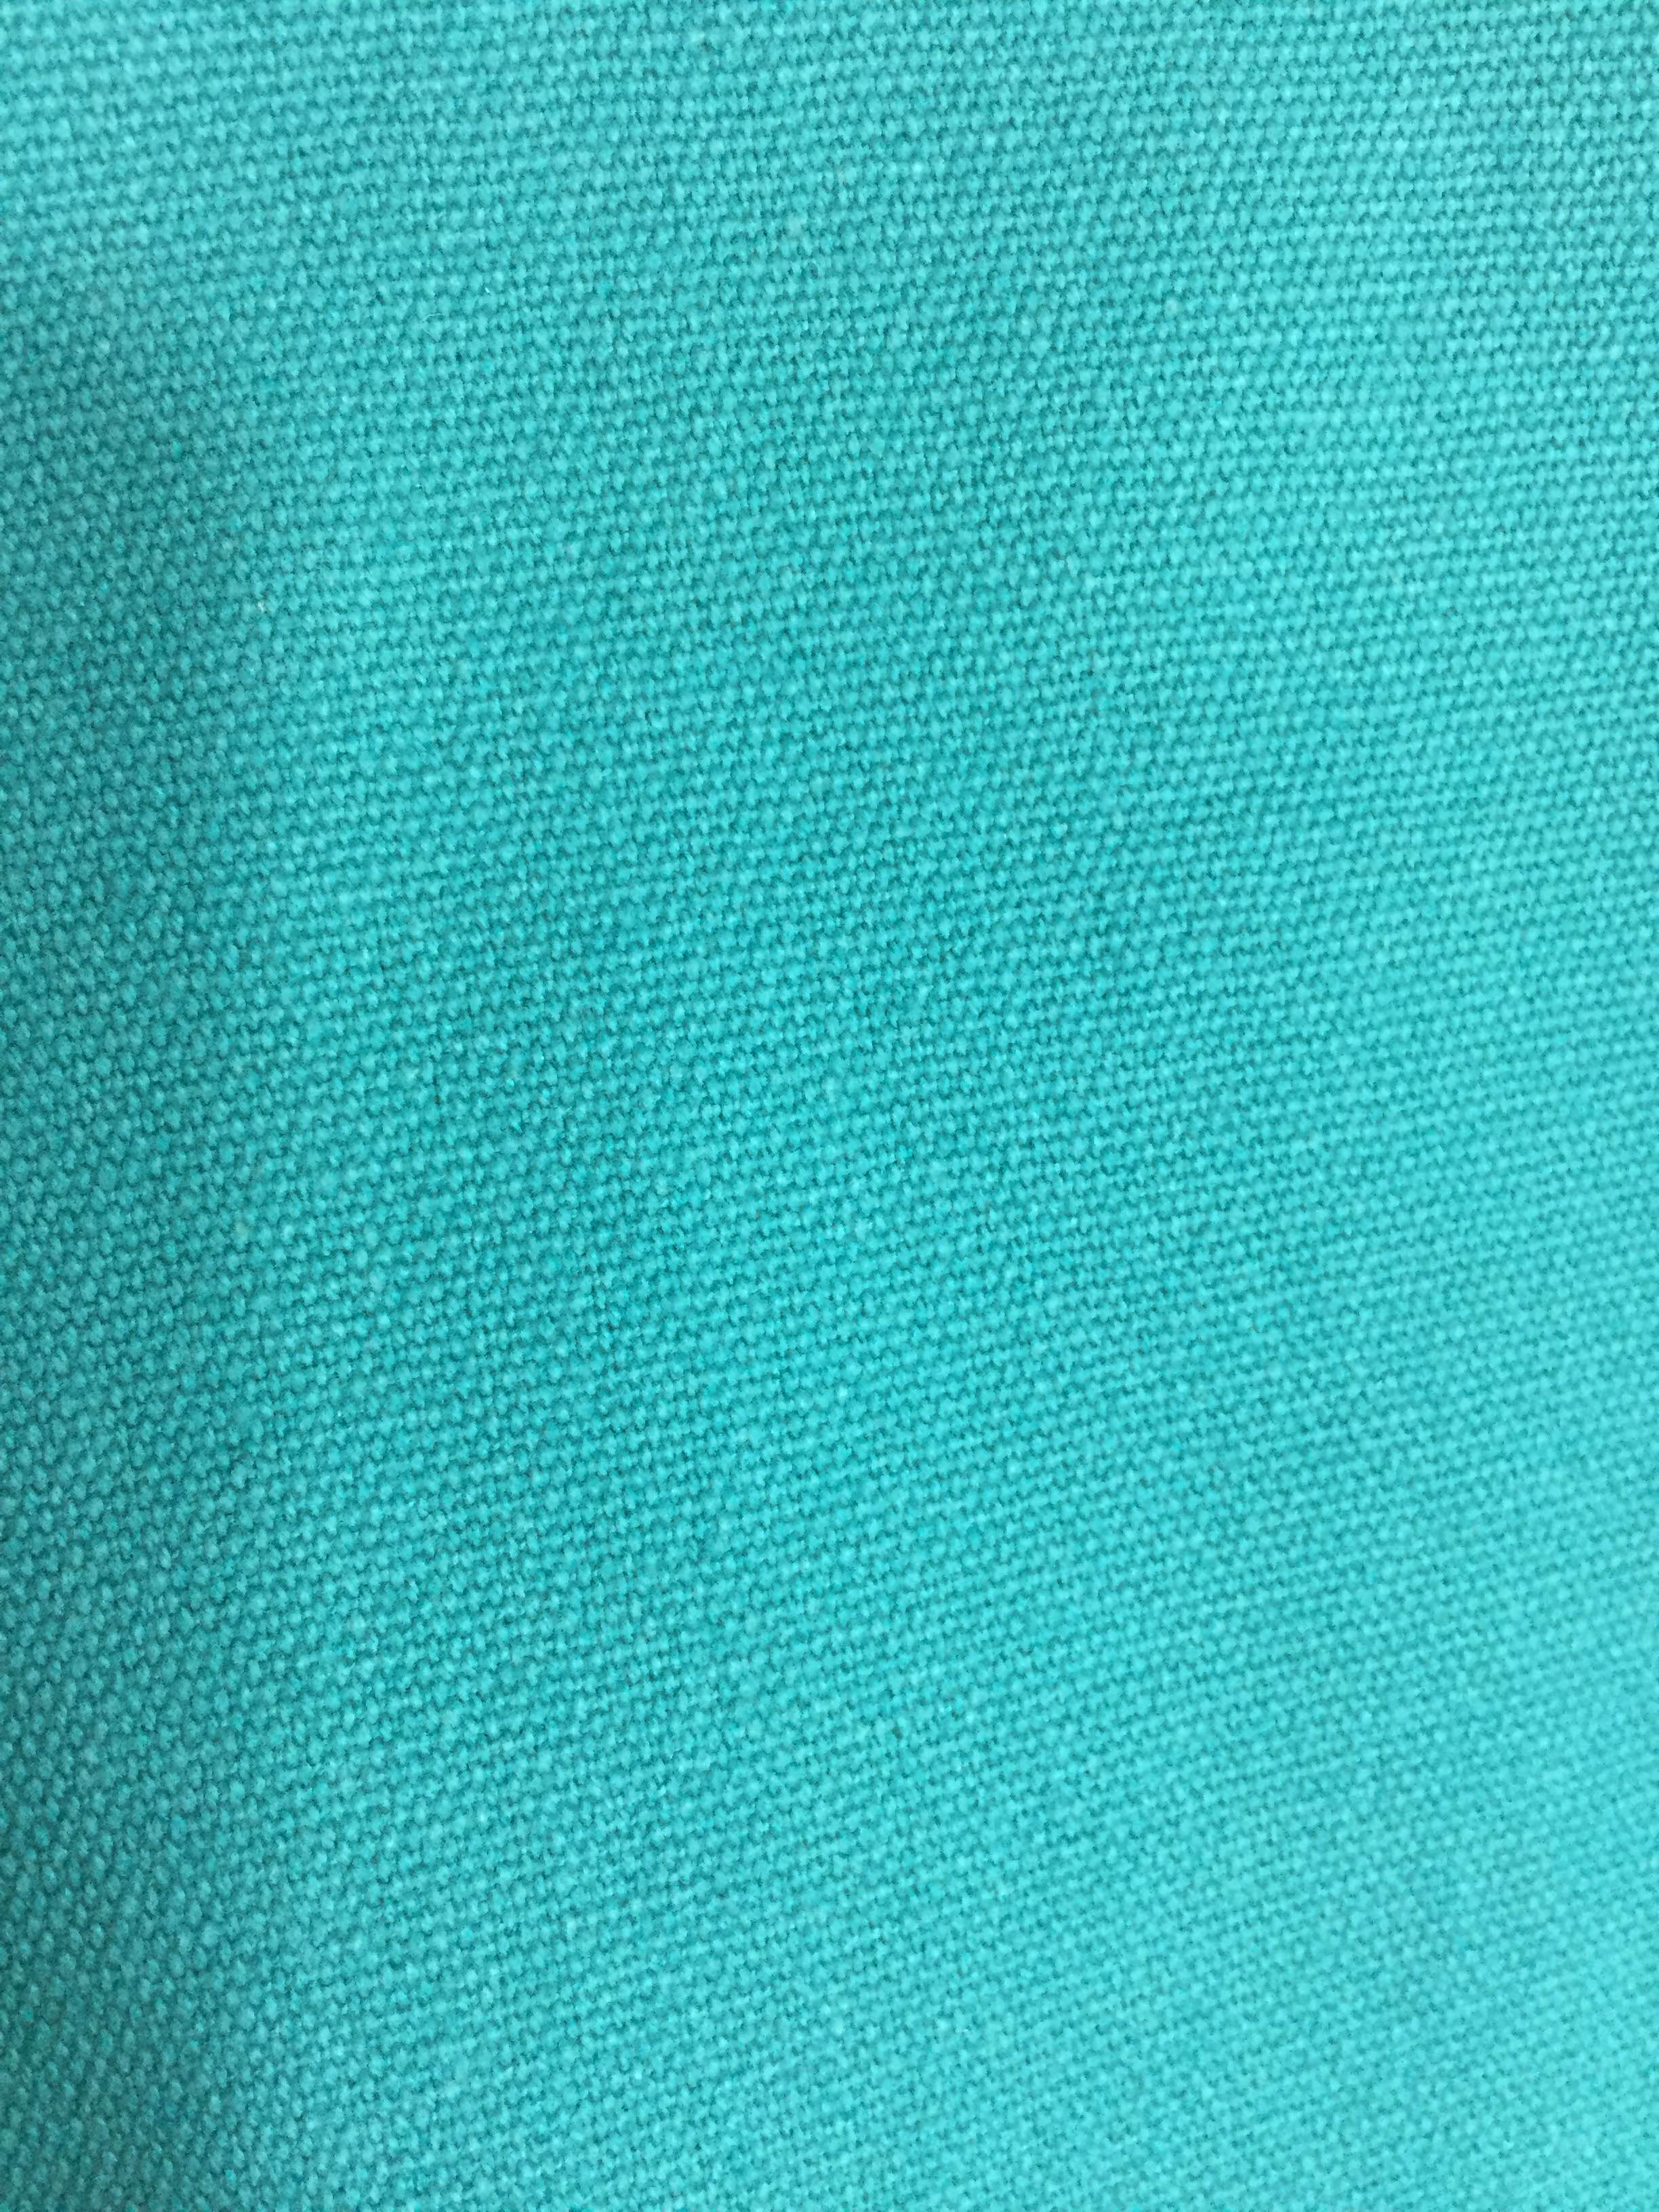 We are manufacturers of Canvas Shoe Fabric. We offer them in various weights & colors. Fabric has excellent Rubbing & Washing Fastness.